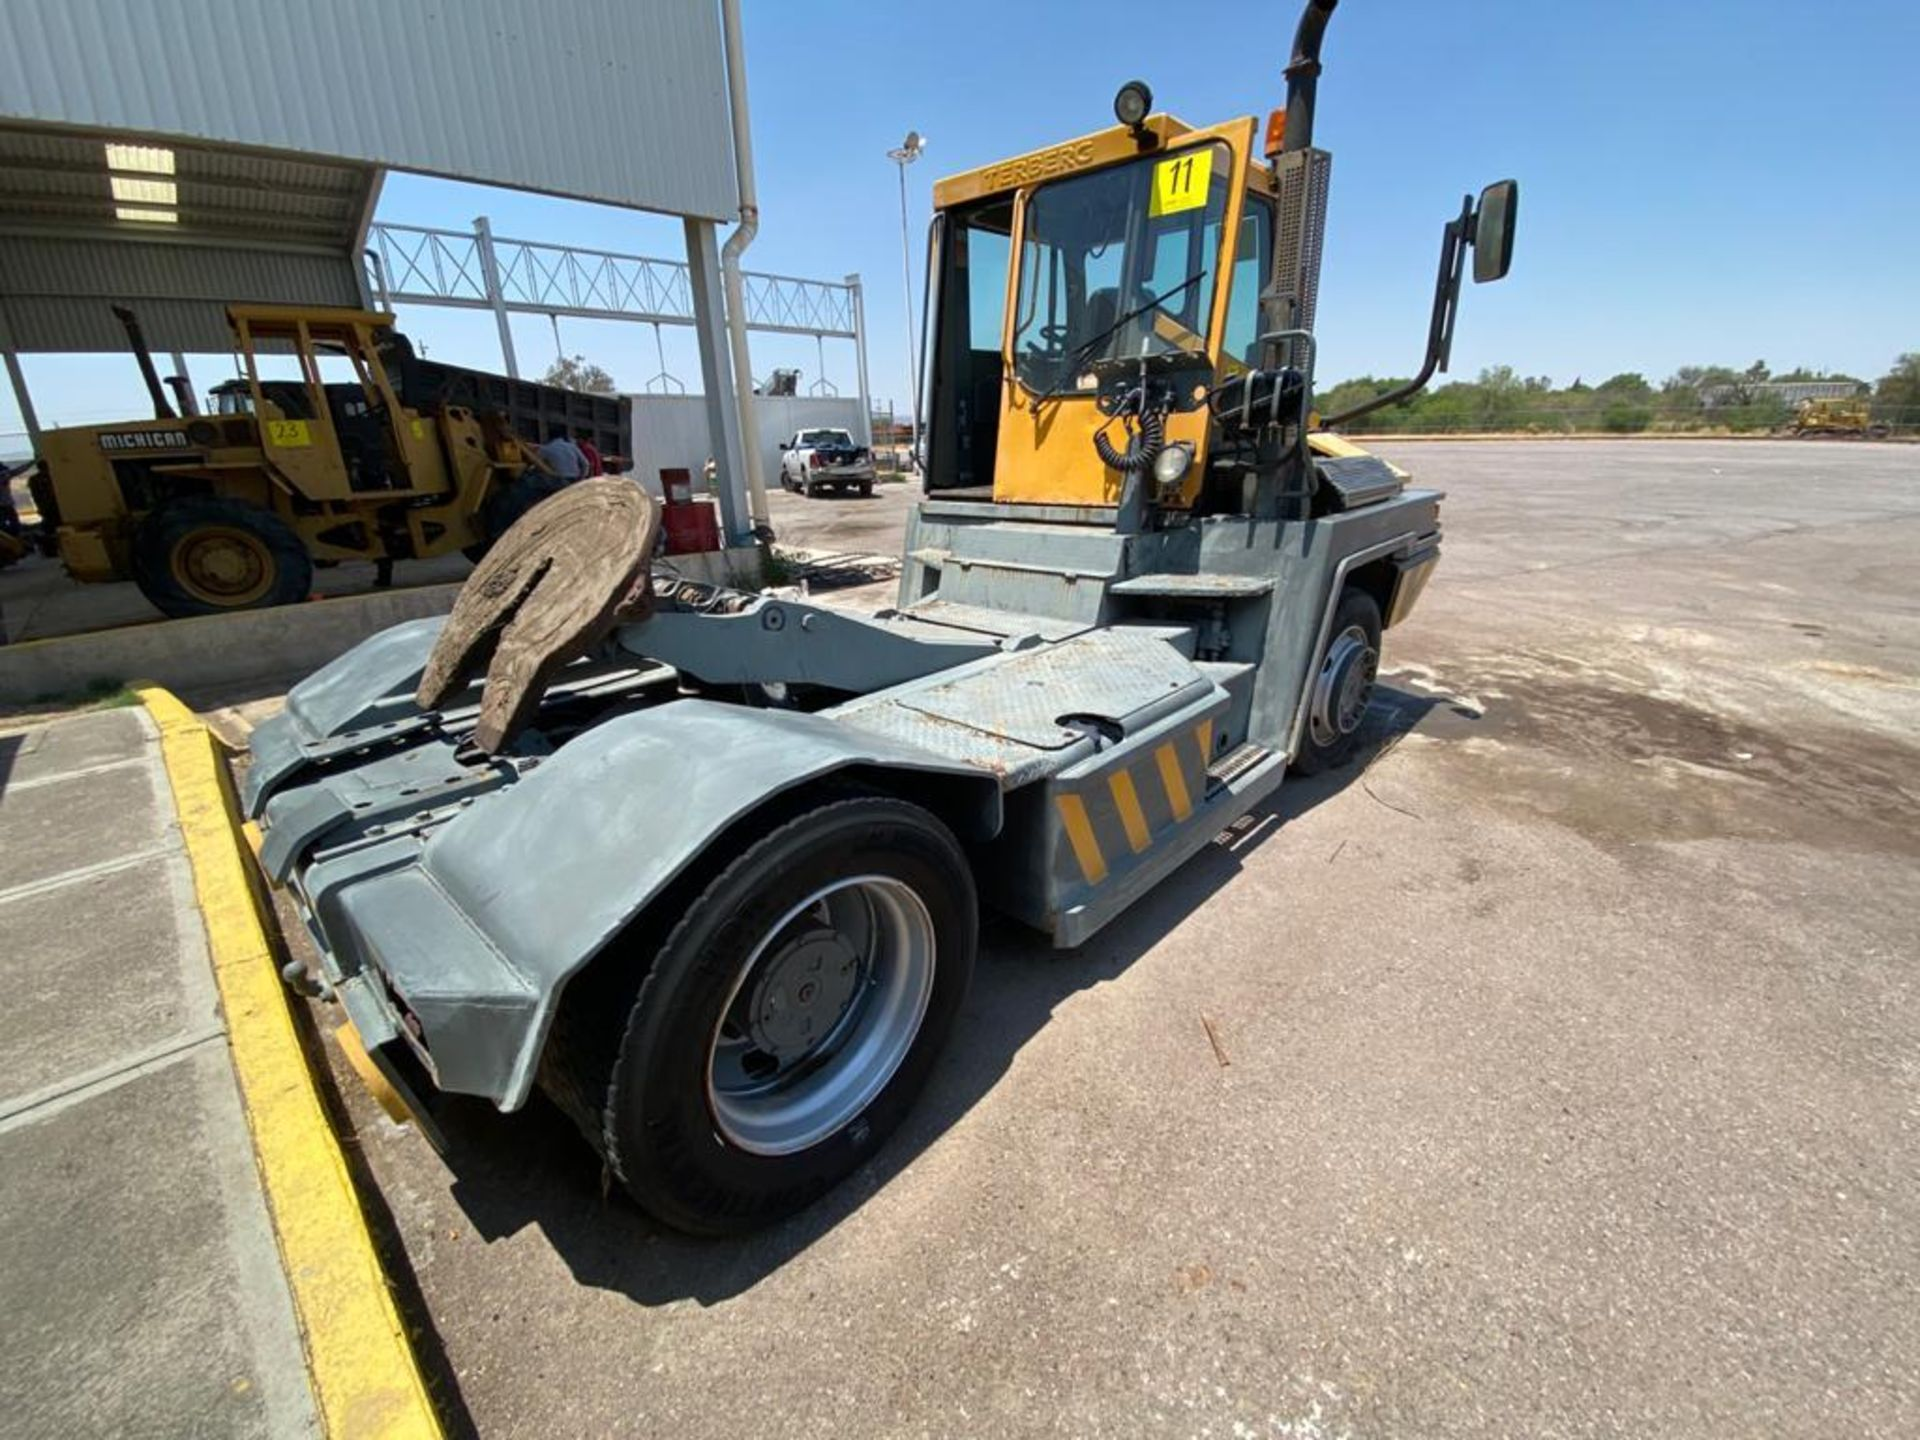 Terberg Capacity 2002 Terminal Tractor, automatic transmission - Image 15 of 57